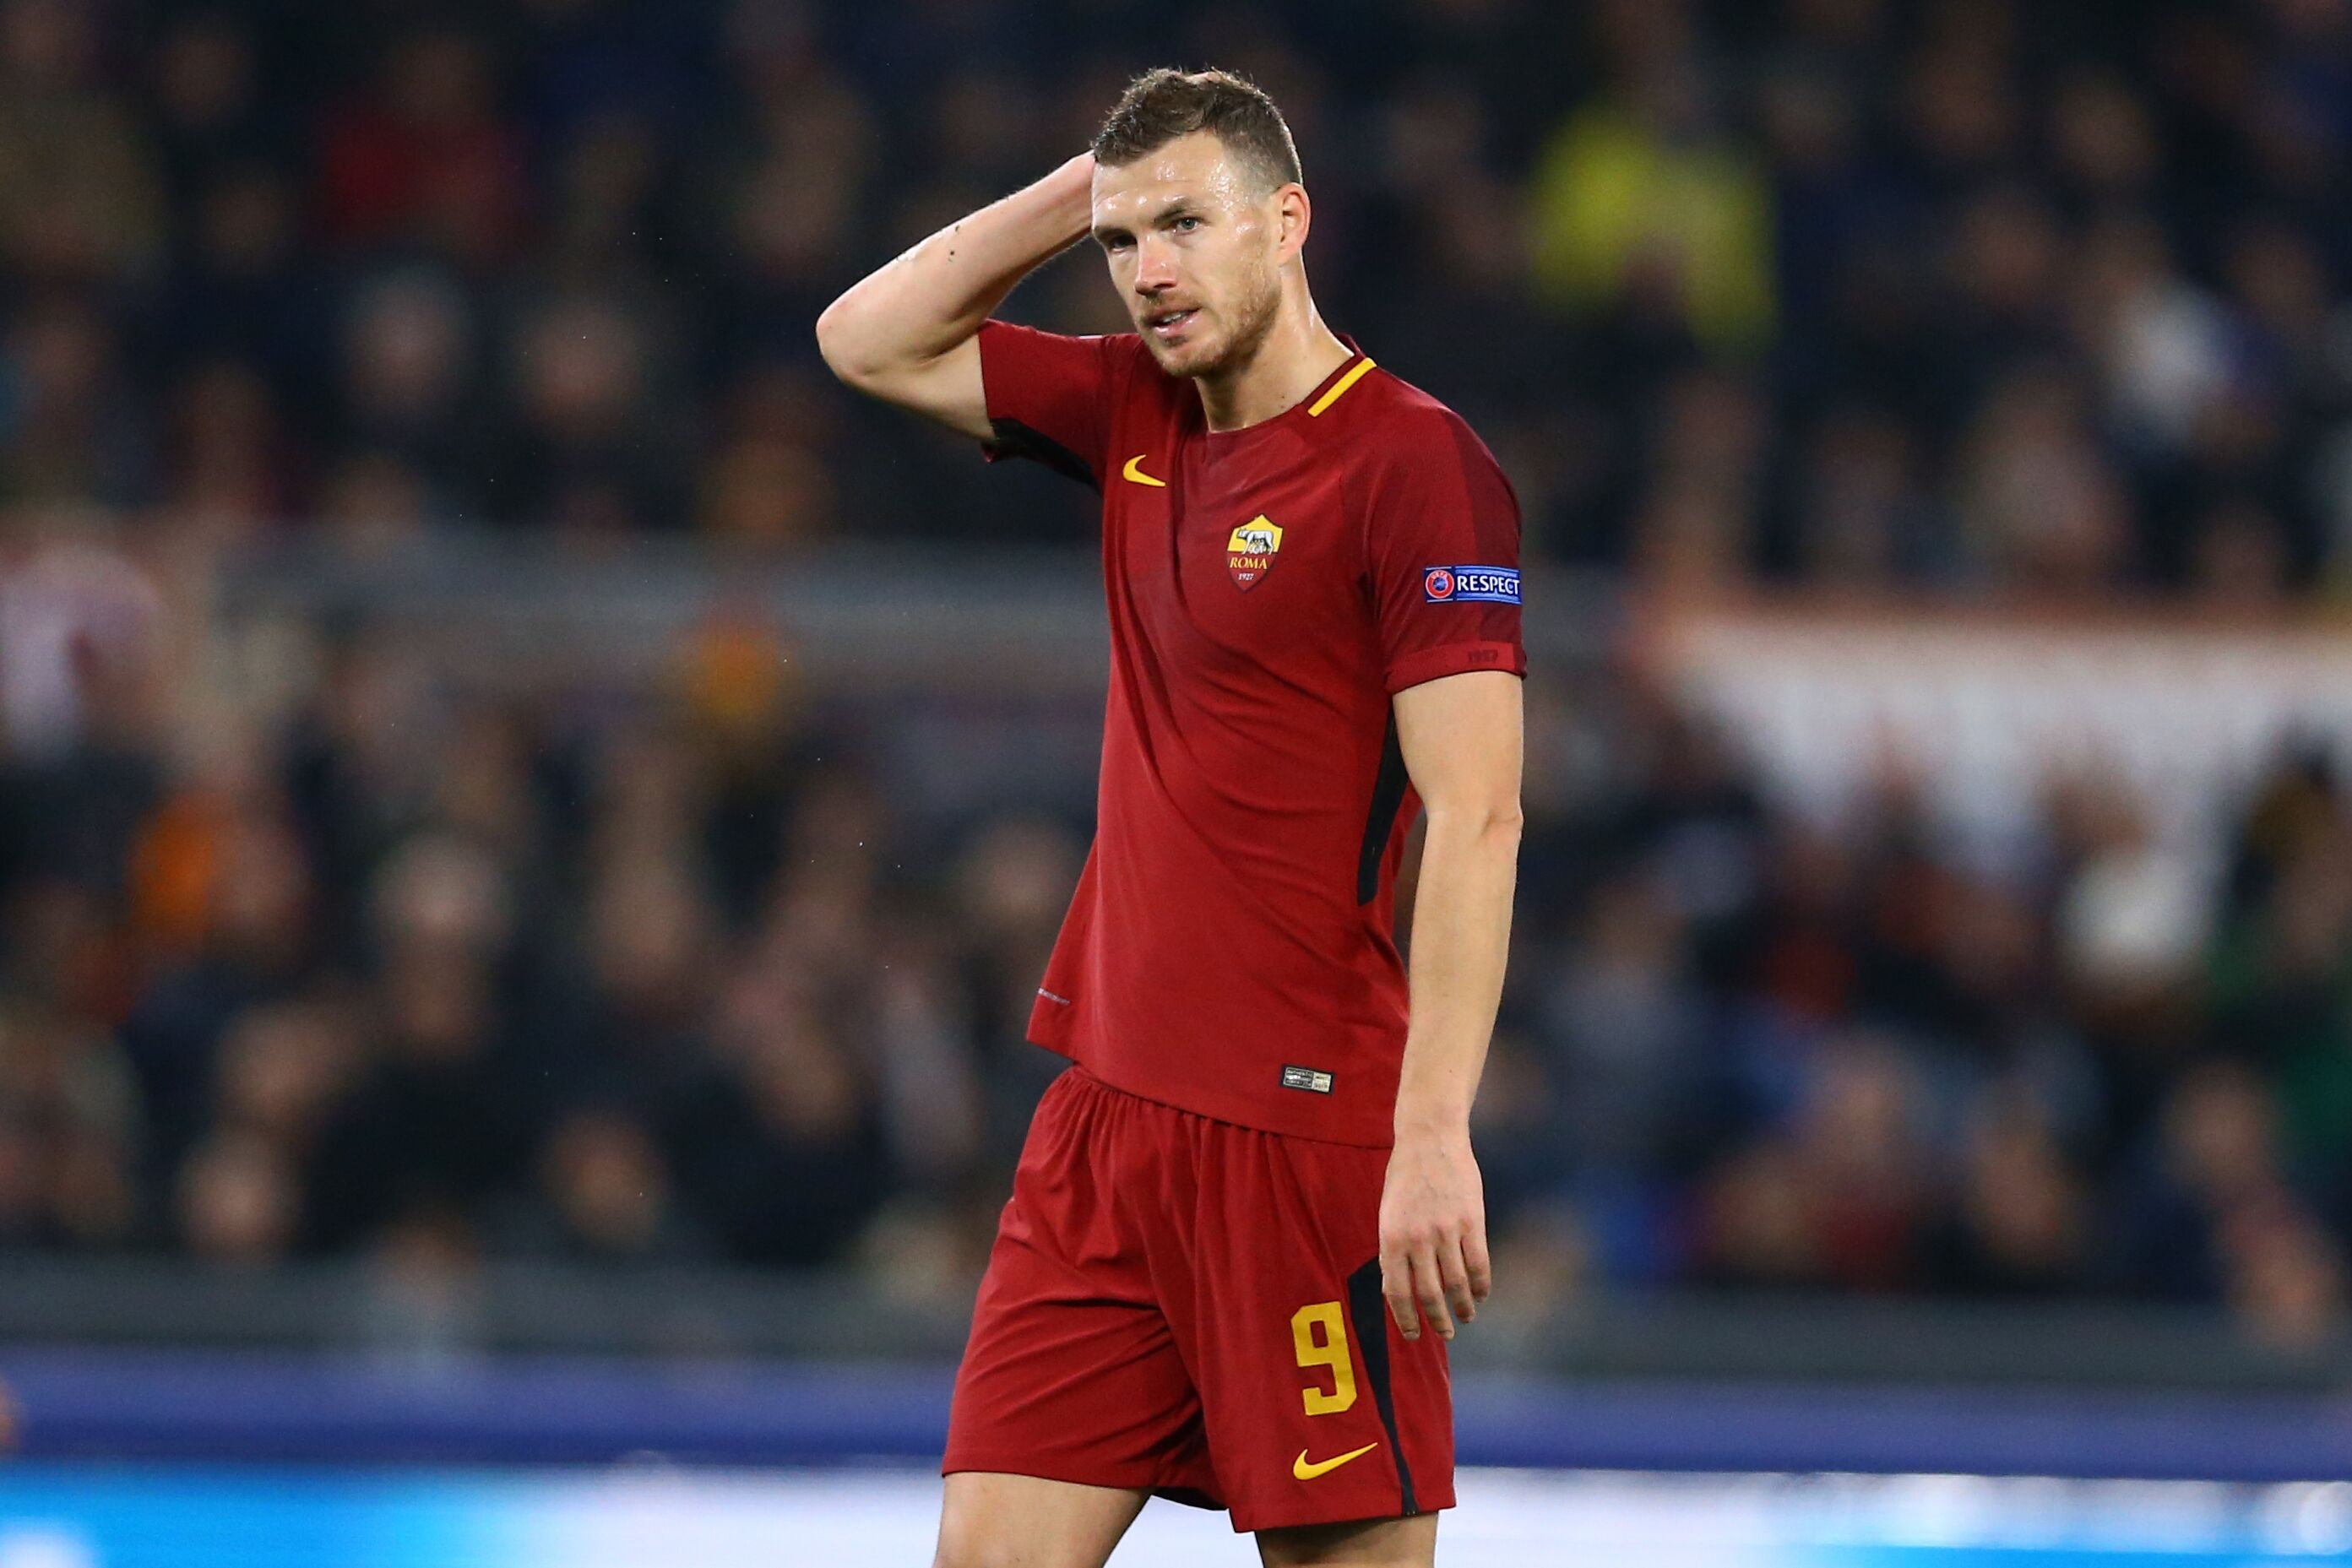 AS Roma v FC Shakhtar Donetsk : UEFA Champions League Round of 16 Second leg